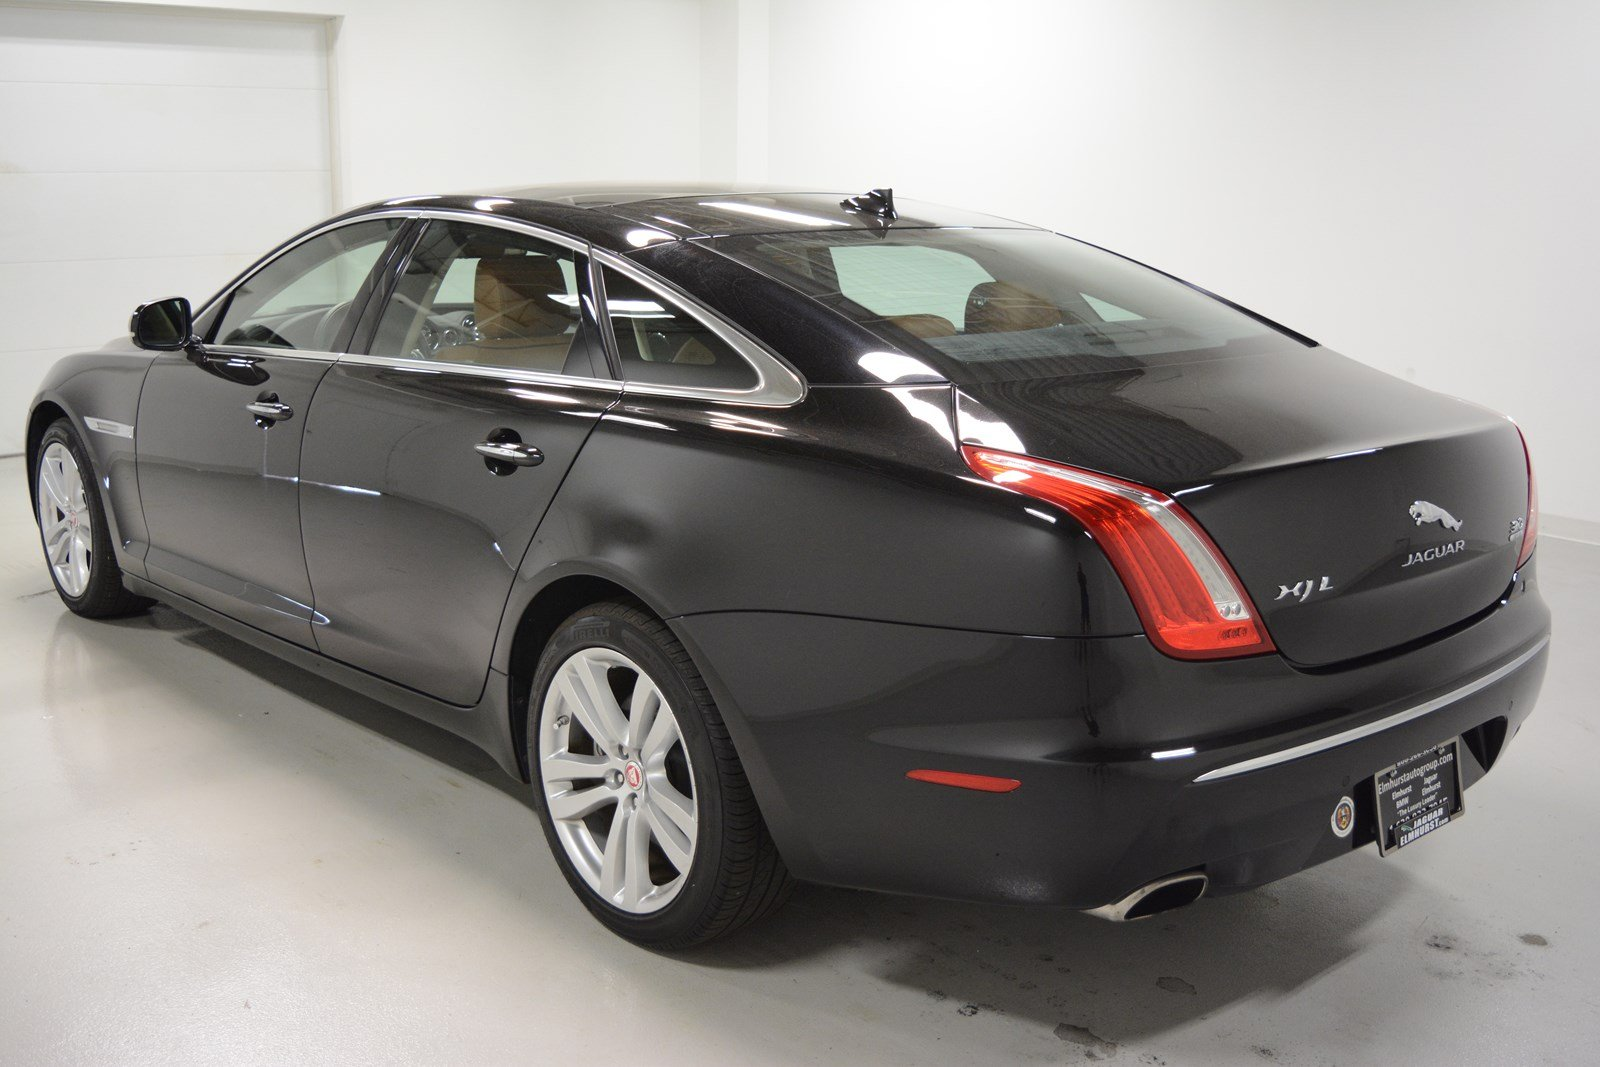 pre owned 2014 jaguar xjl xjl portfolio 4dr car in elmhurst j2420p jaguar elmhurst. Black Bedroom Furniture Sets. Home Design Ideas